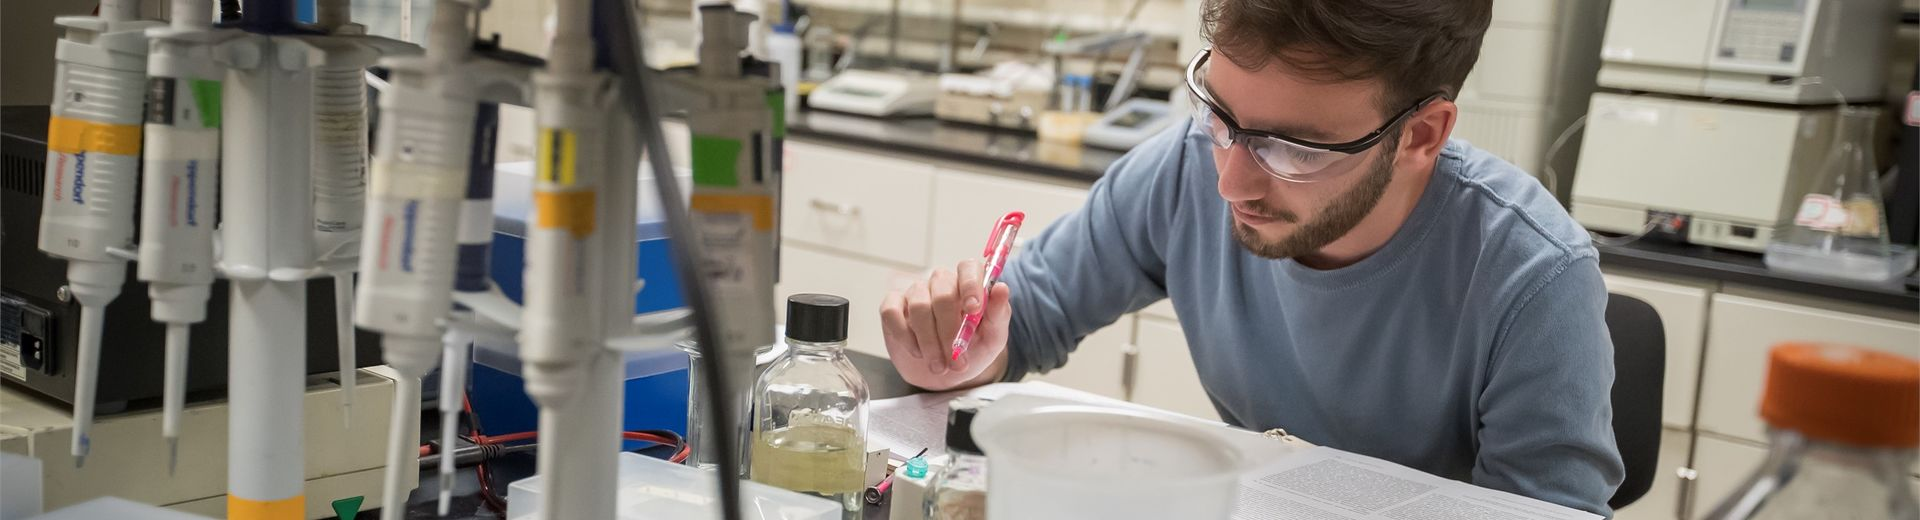 Temple student sitting over book, highlighter in hand, in a College of Science and Technology laboratory.